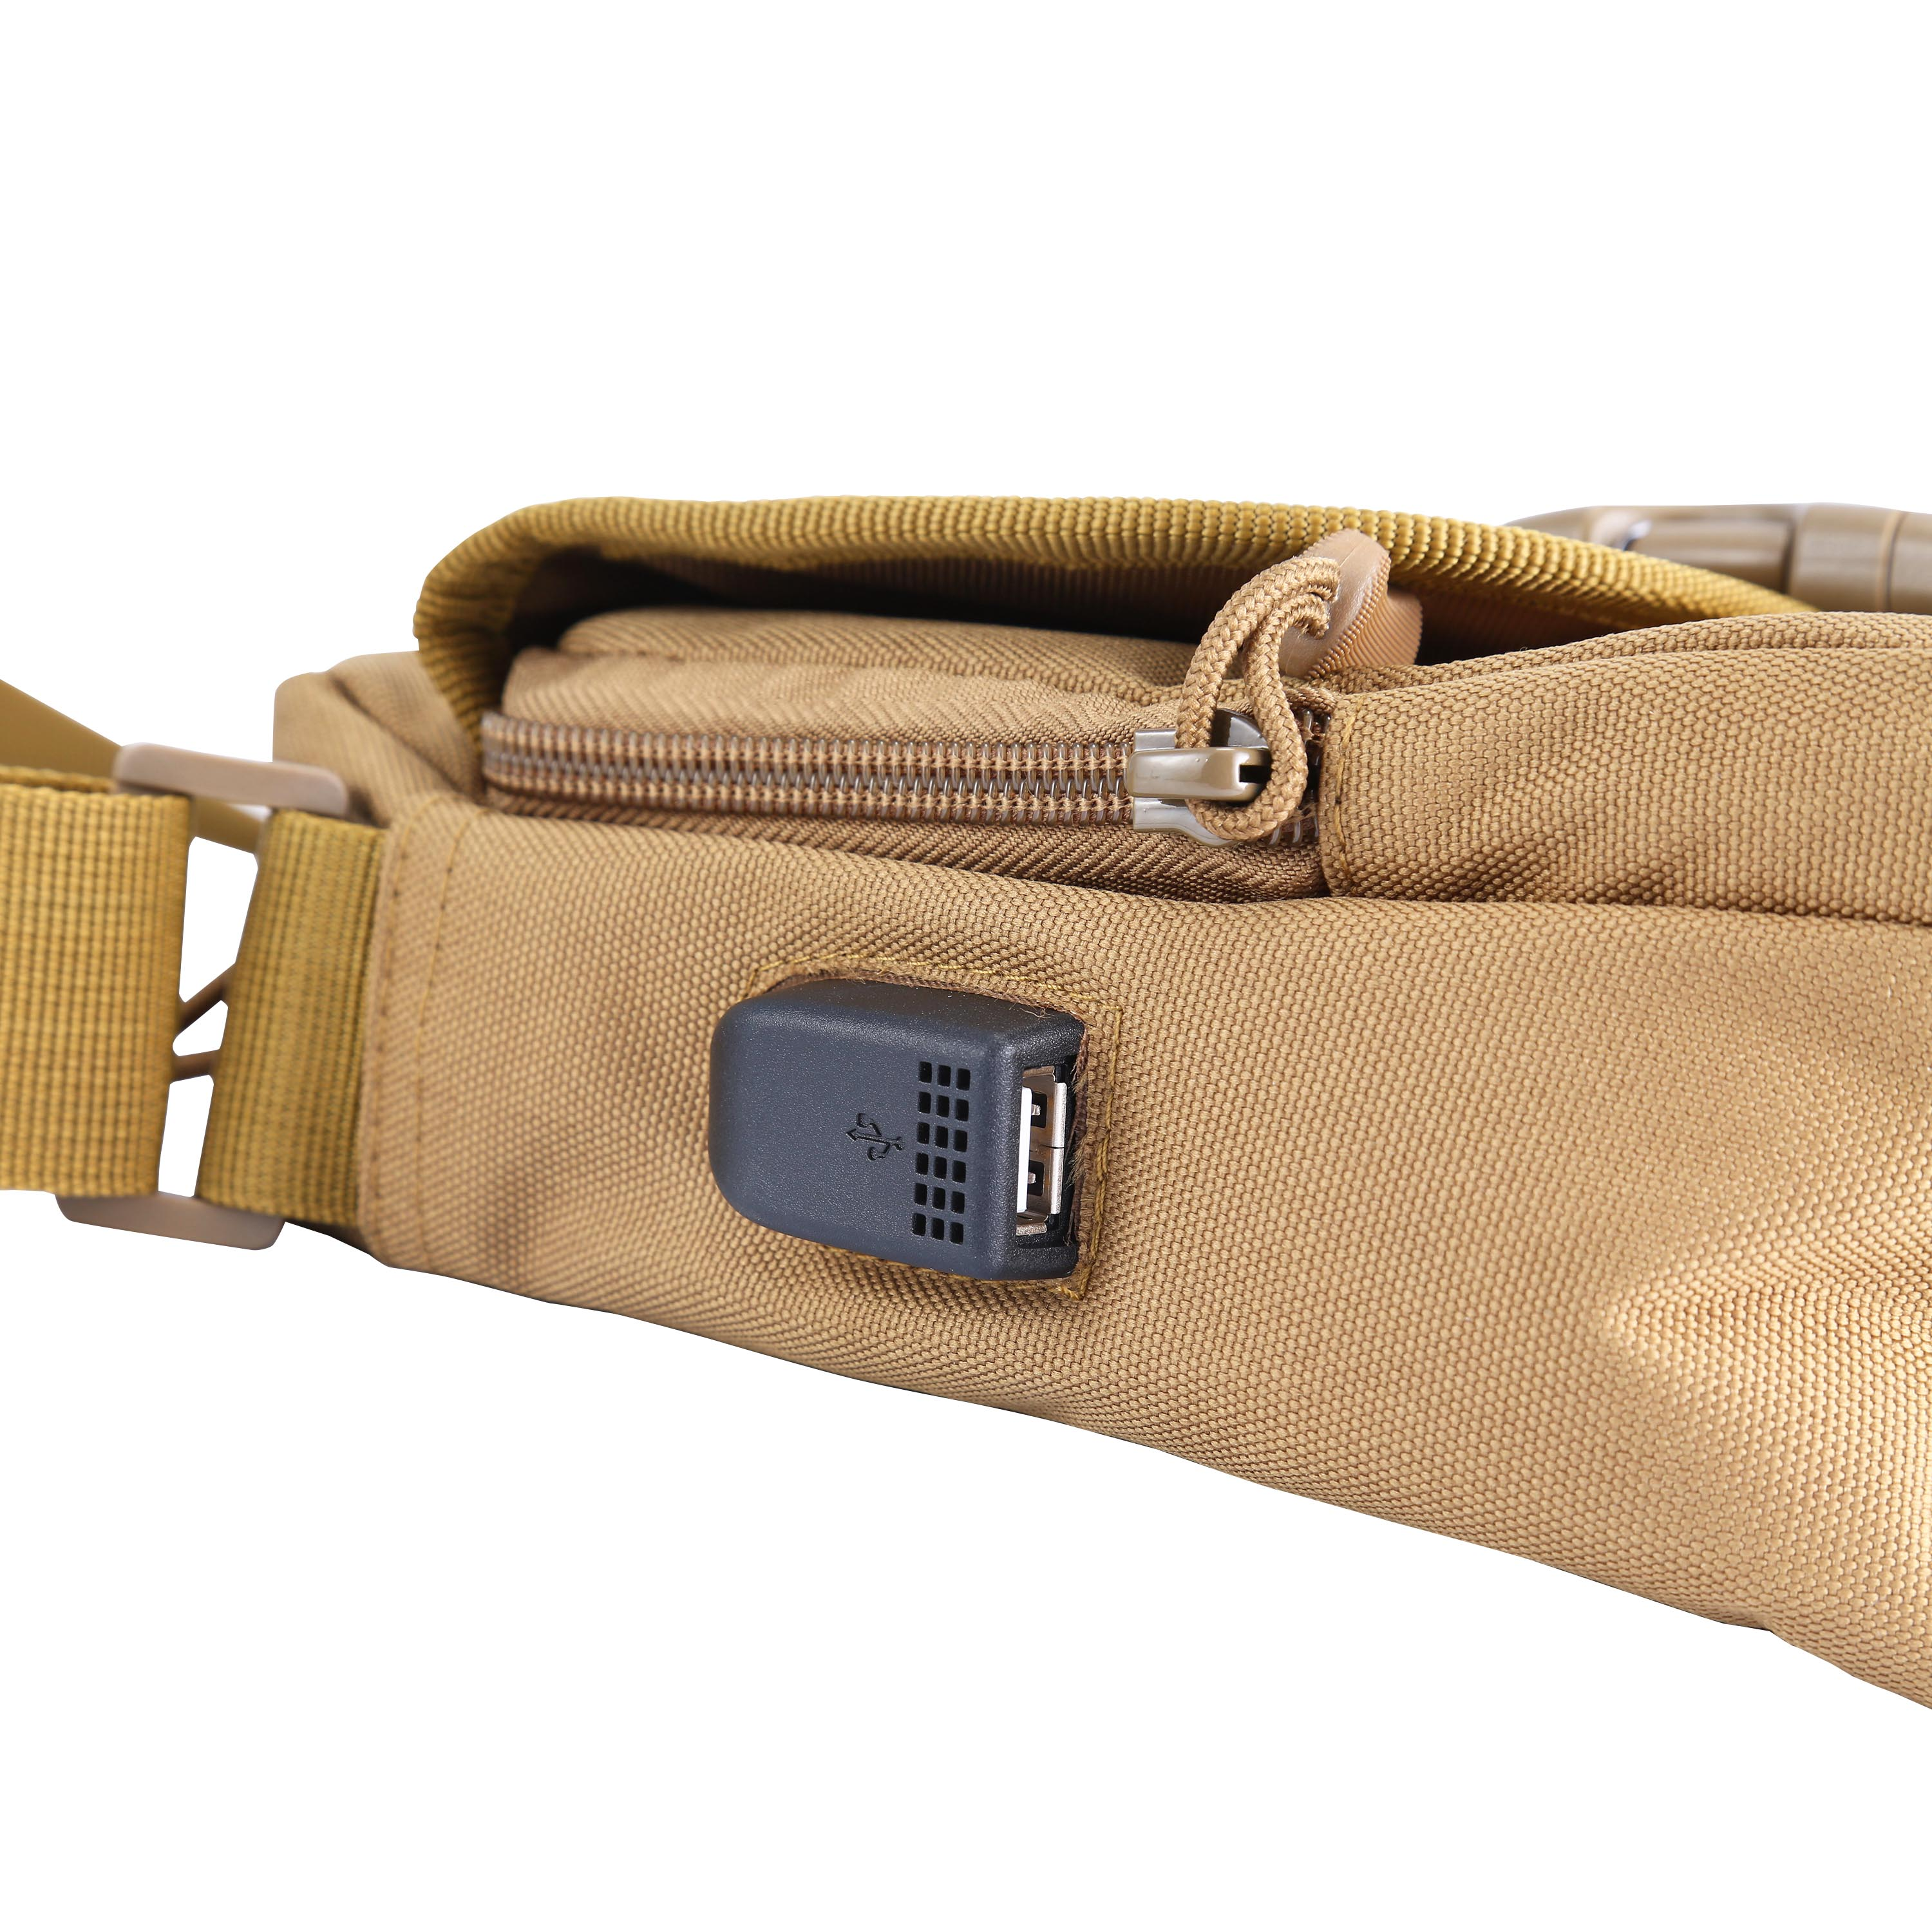 Mens Military Tactical Shoulder Bag Crossbody Messenger Sling Pack Molle Pouch